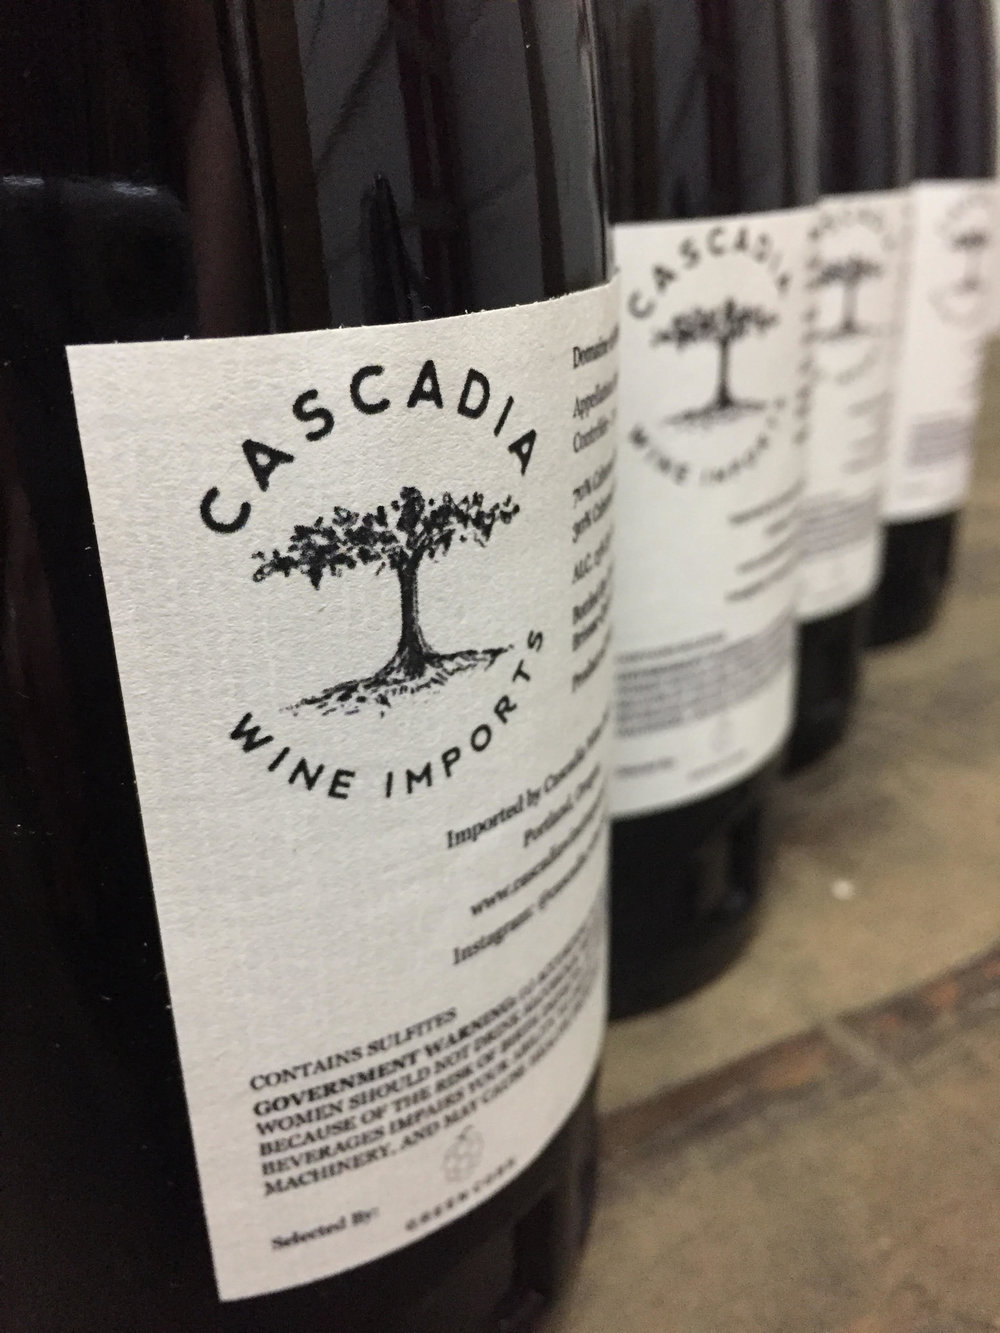 Look for this back label to see if you have a Cascadia Imports wine!